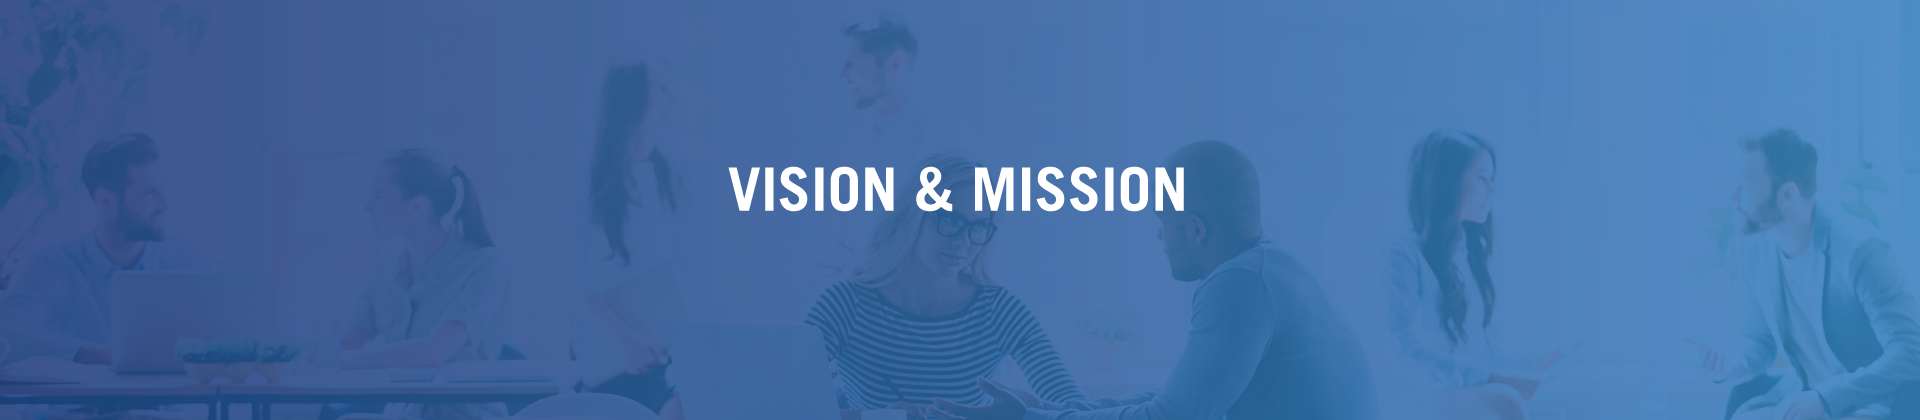 TLC_Banner_Vision-and-Mission_Page